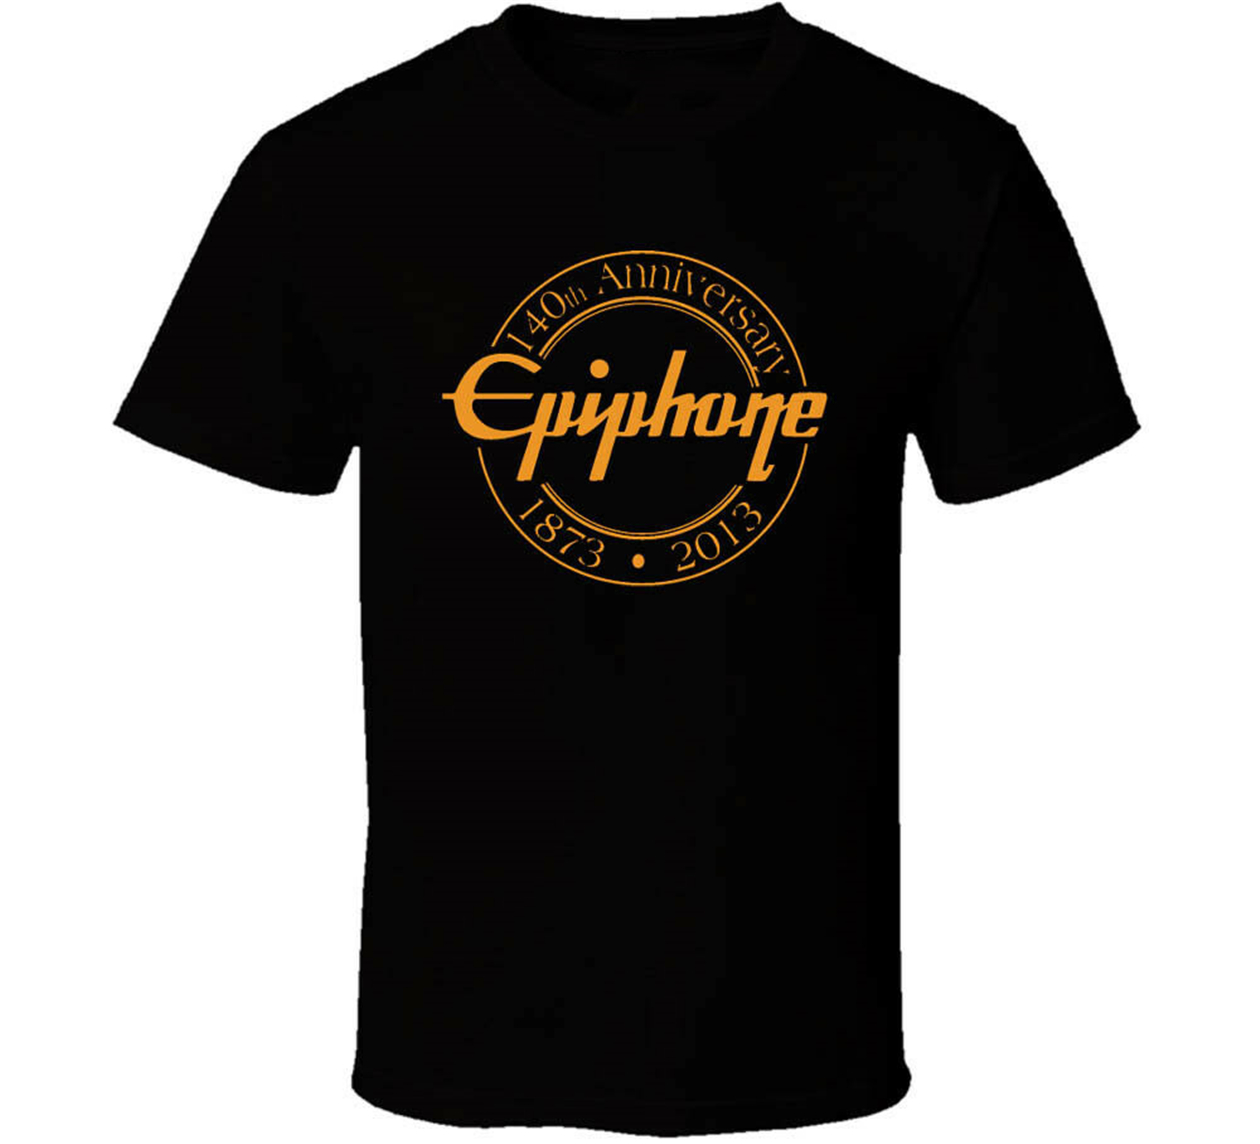 Epiphone 1873 2013 140 Years Black White Tshirt Men's Free Shipping T-Shirt Homme Customized